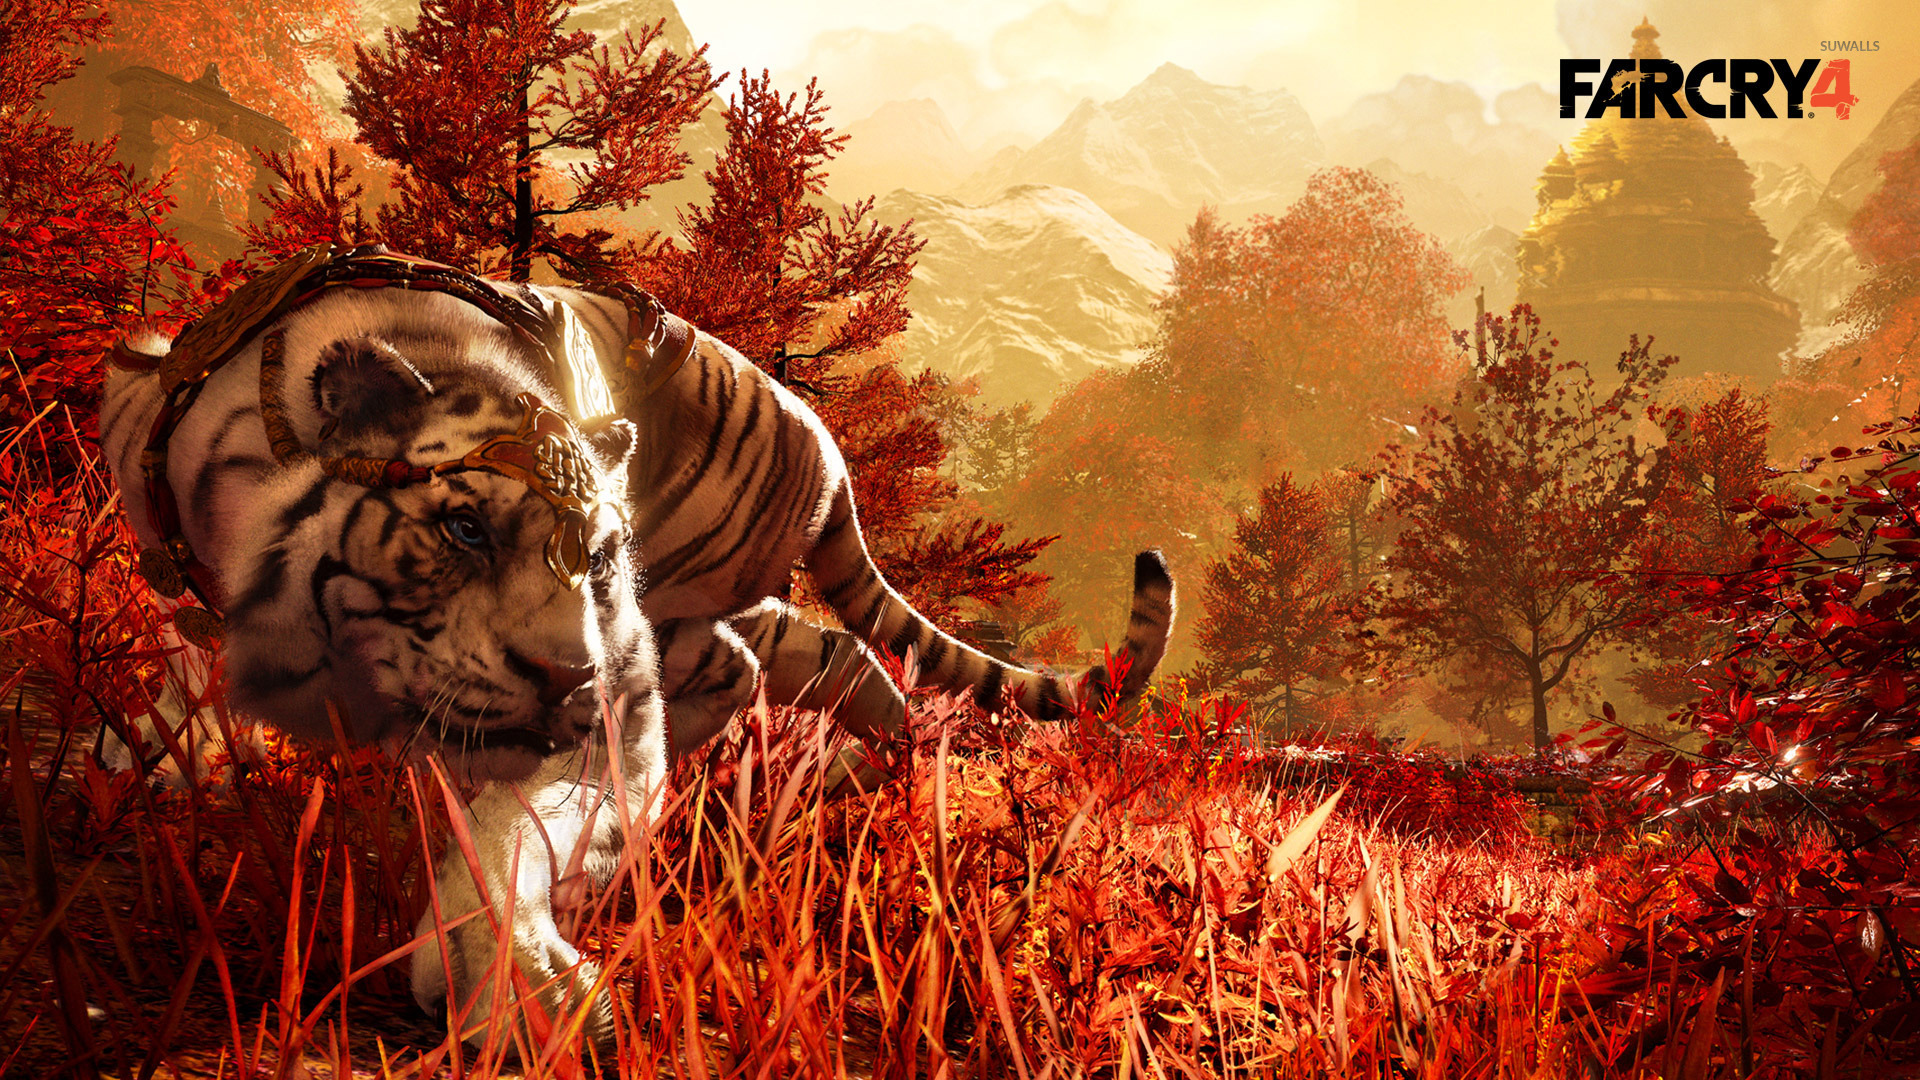 Free Download Far Cry 4 Wallpaper Game Wallpapers 32217 1920x1080